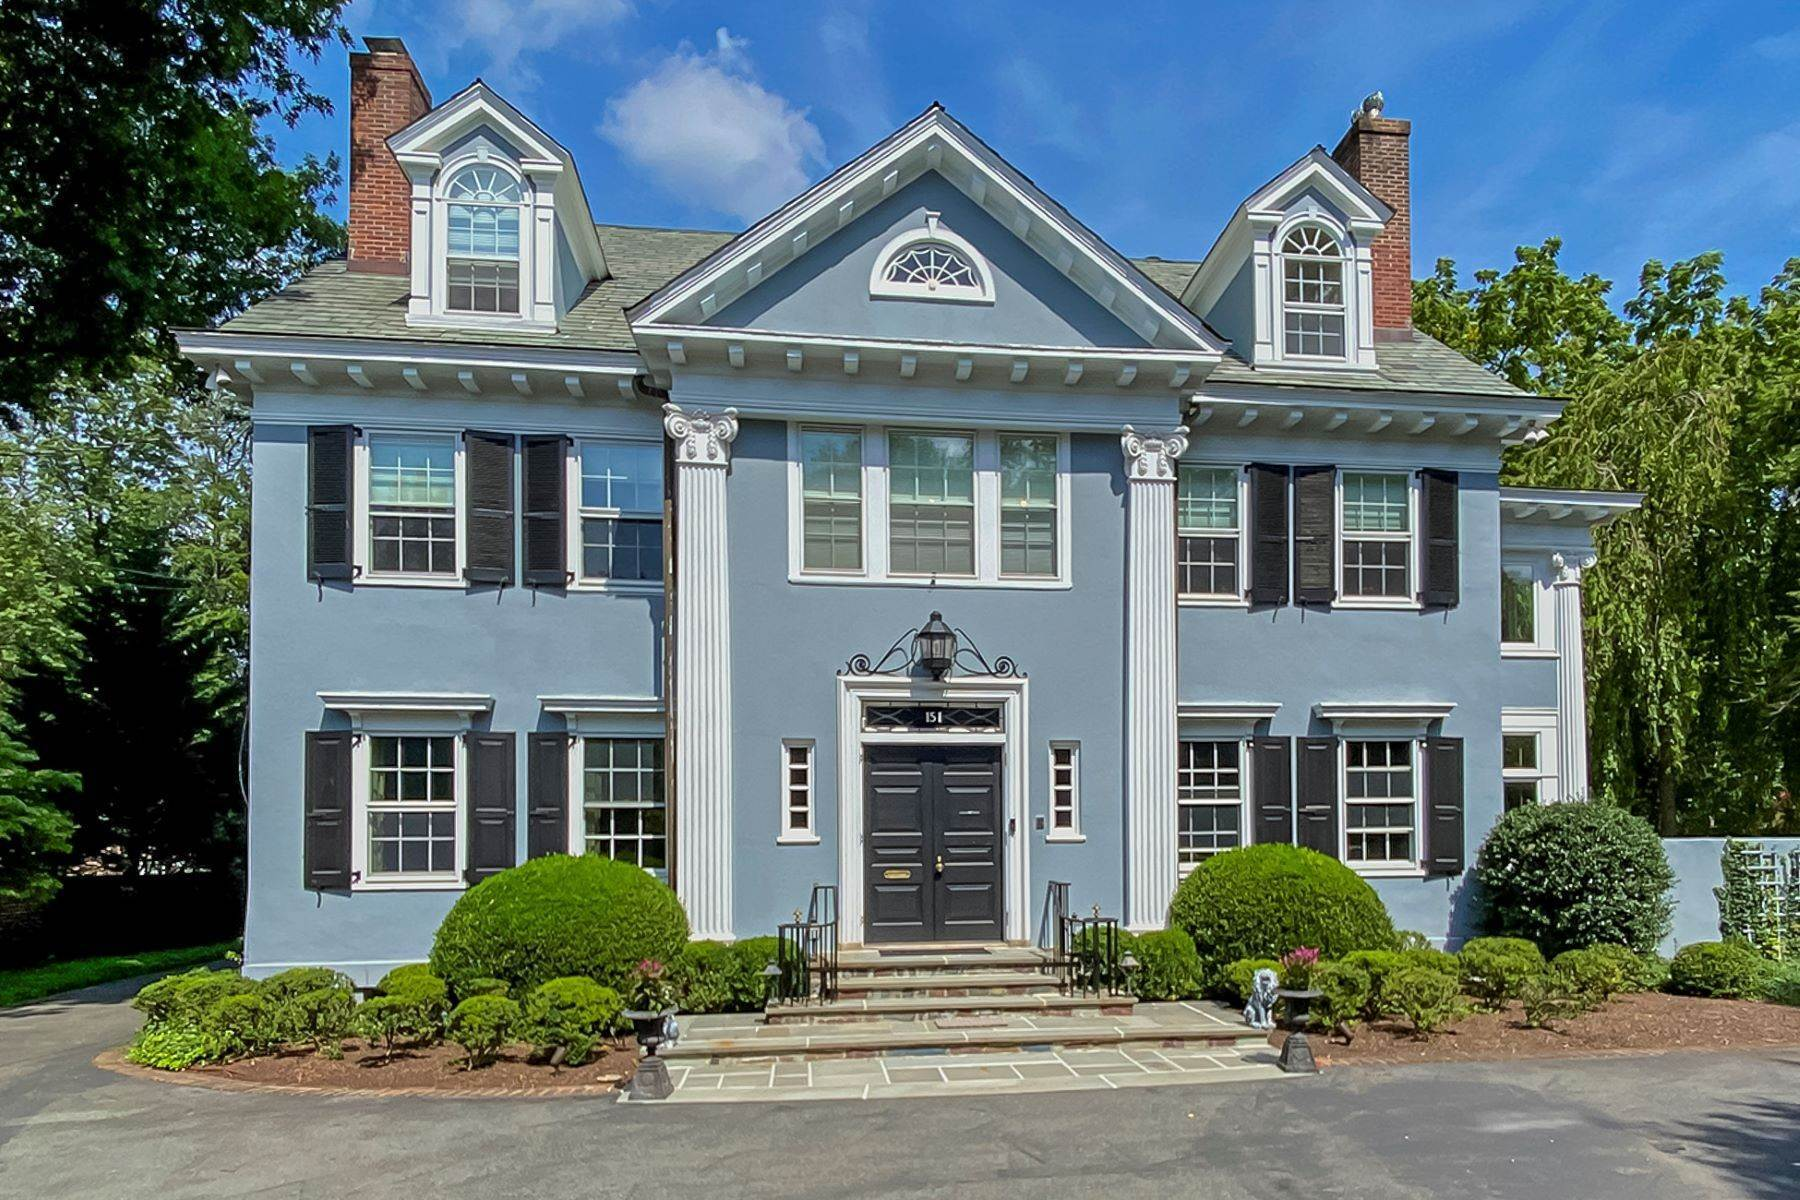 Single Family Homes for Sale at Elegant, Easy-Living Versatility on Library Place 151 Library Place, Princeton, New Jersey 08540 United States